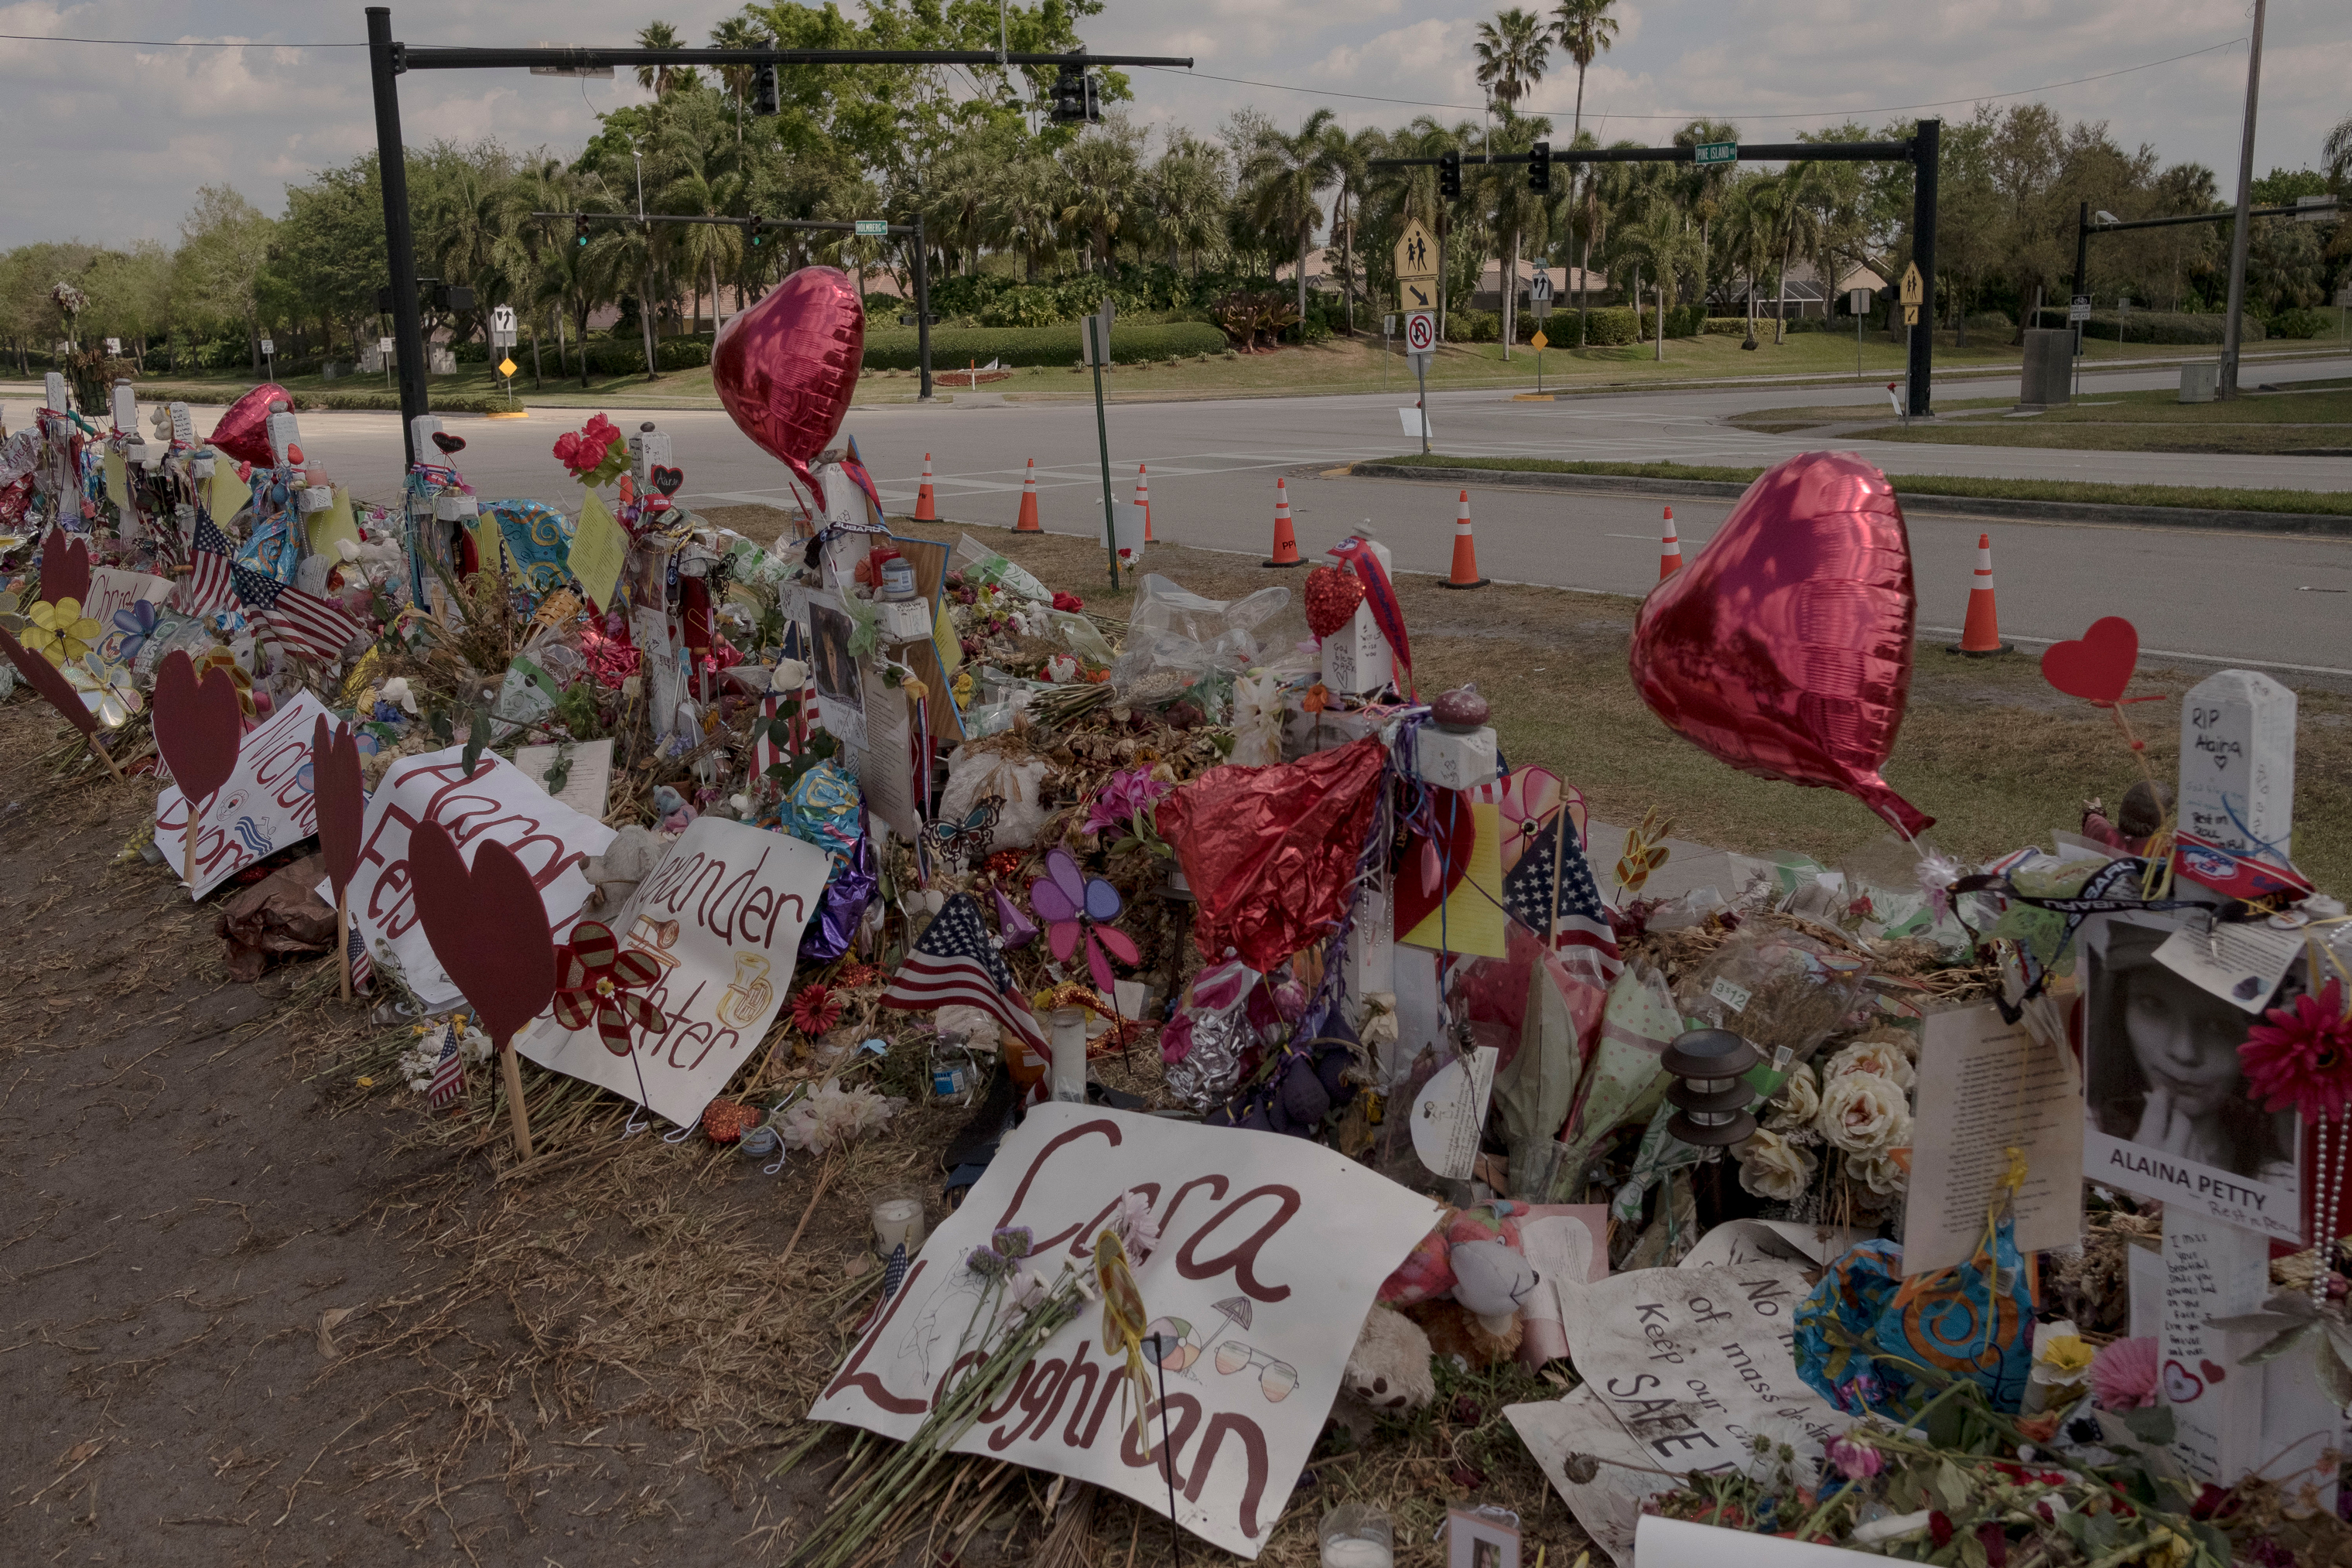 A memorial is left in front of Marjory Stoneman Douglas High School for the victims of the school shooting in Parkland, Florida on March 6, 2018.